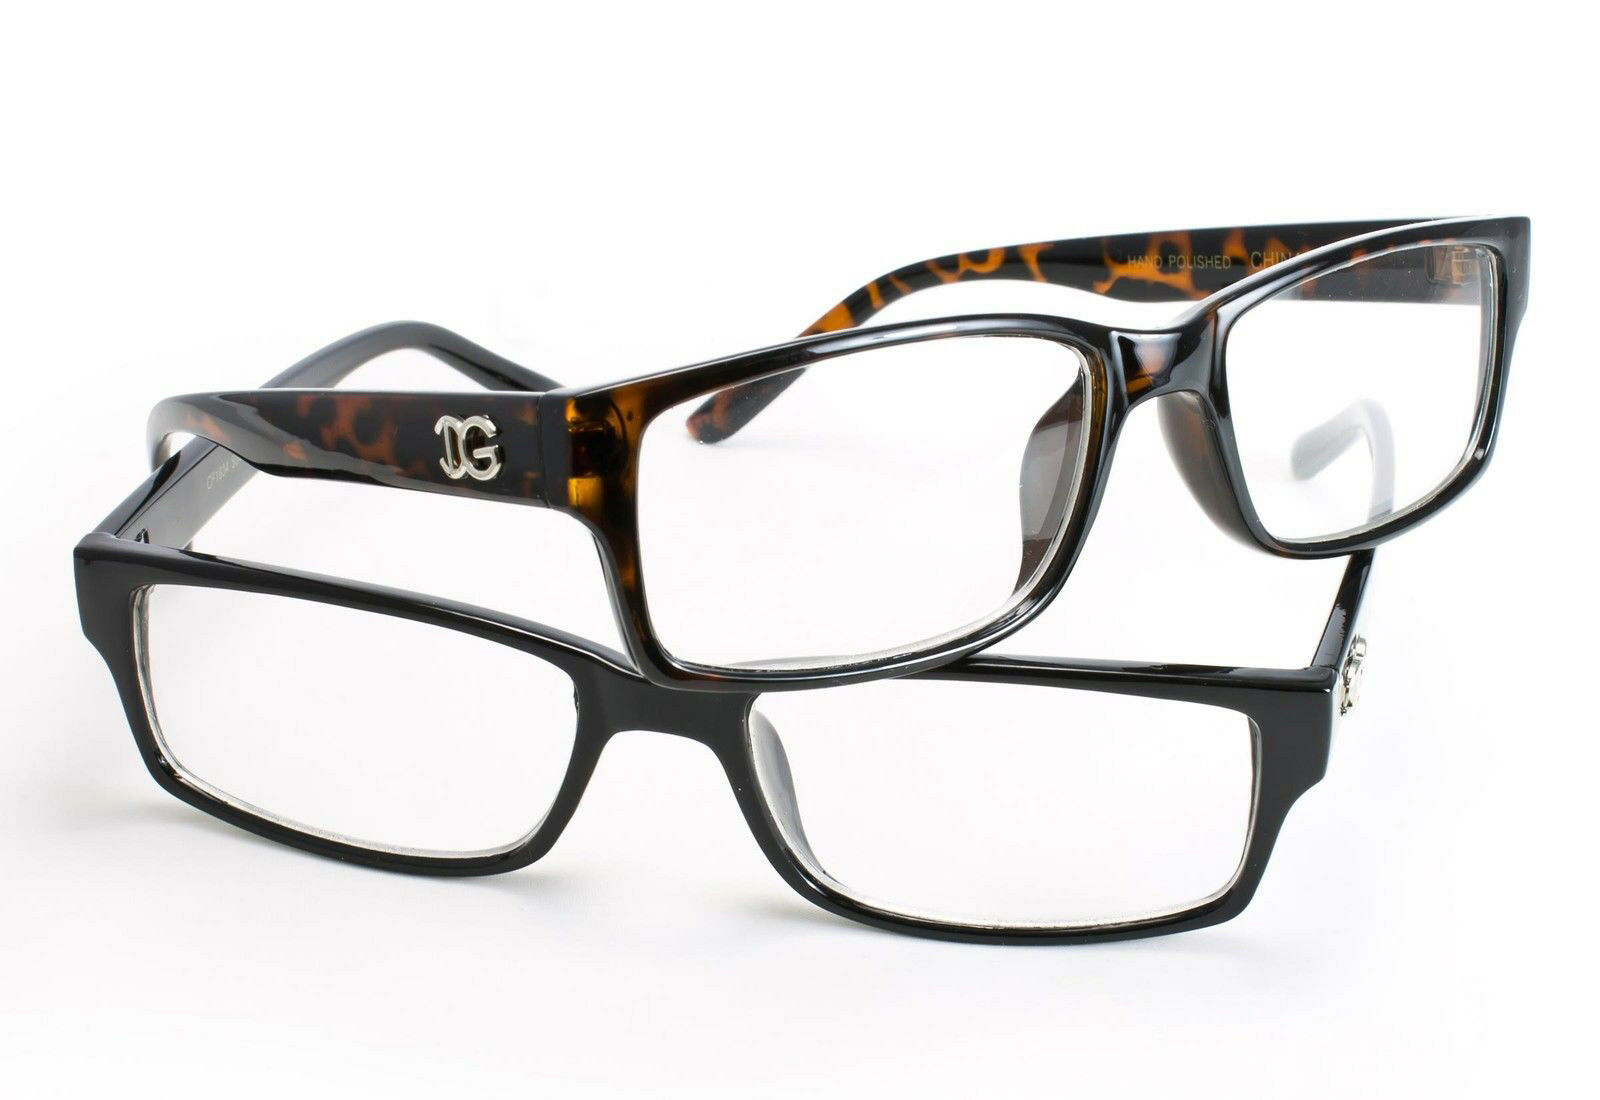 Fashion eyeglasses non prescription